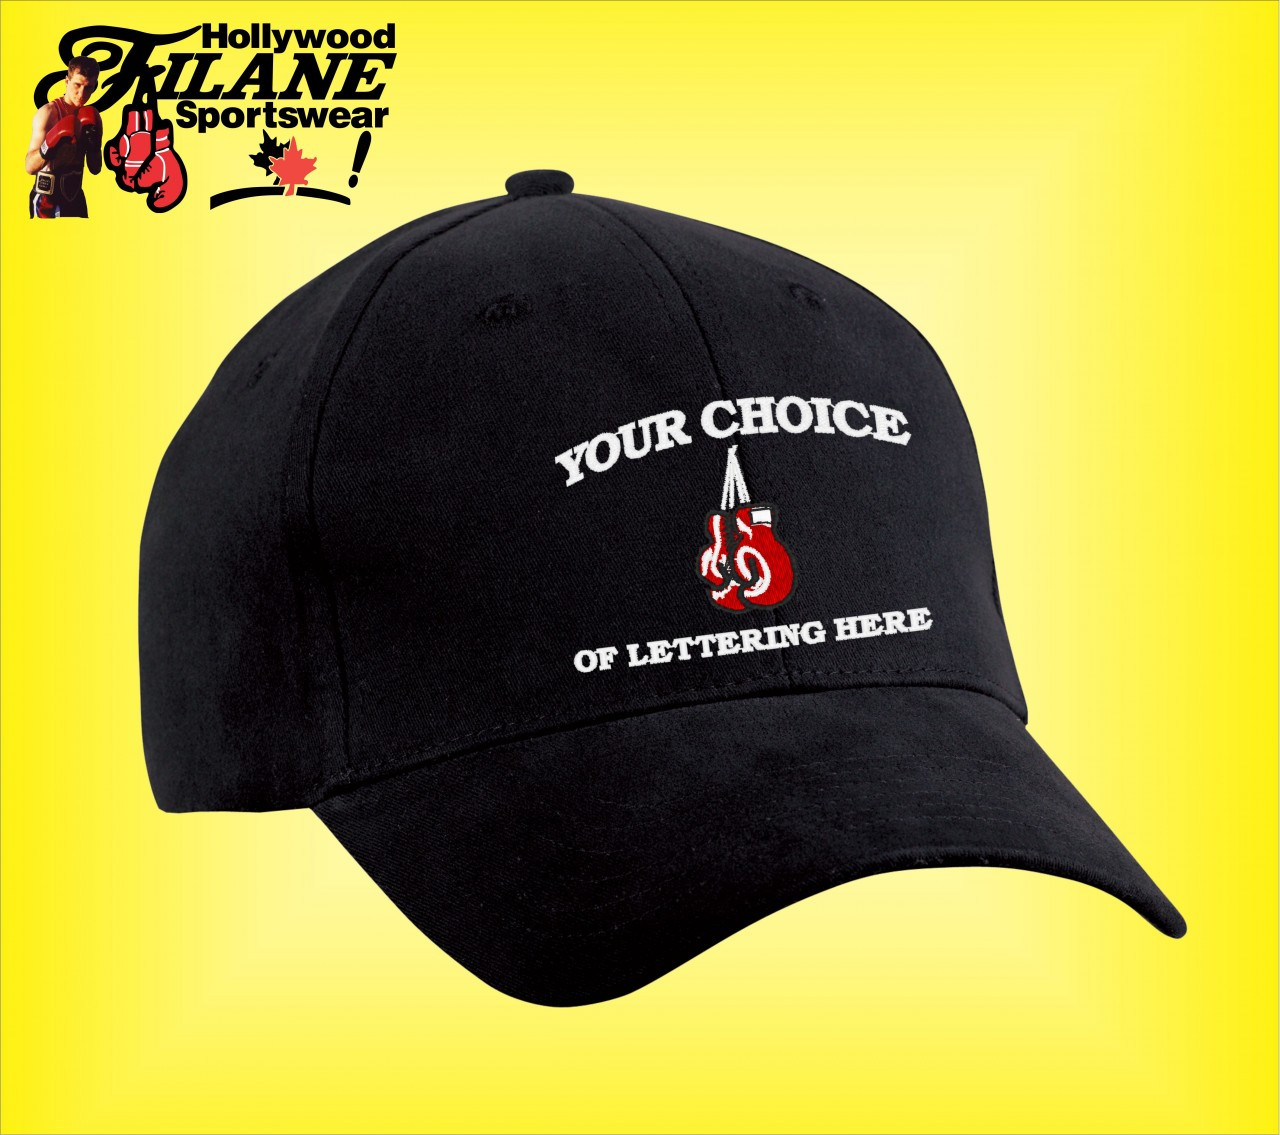 Personalized Boxing logo Hat - Hollywood Filane b7467256639a